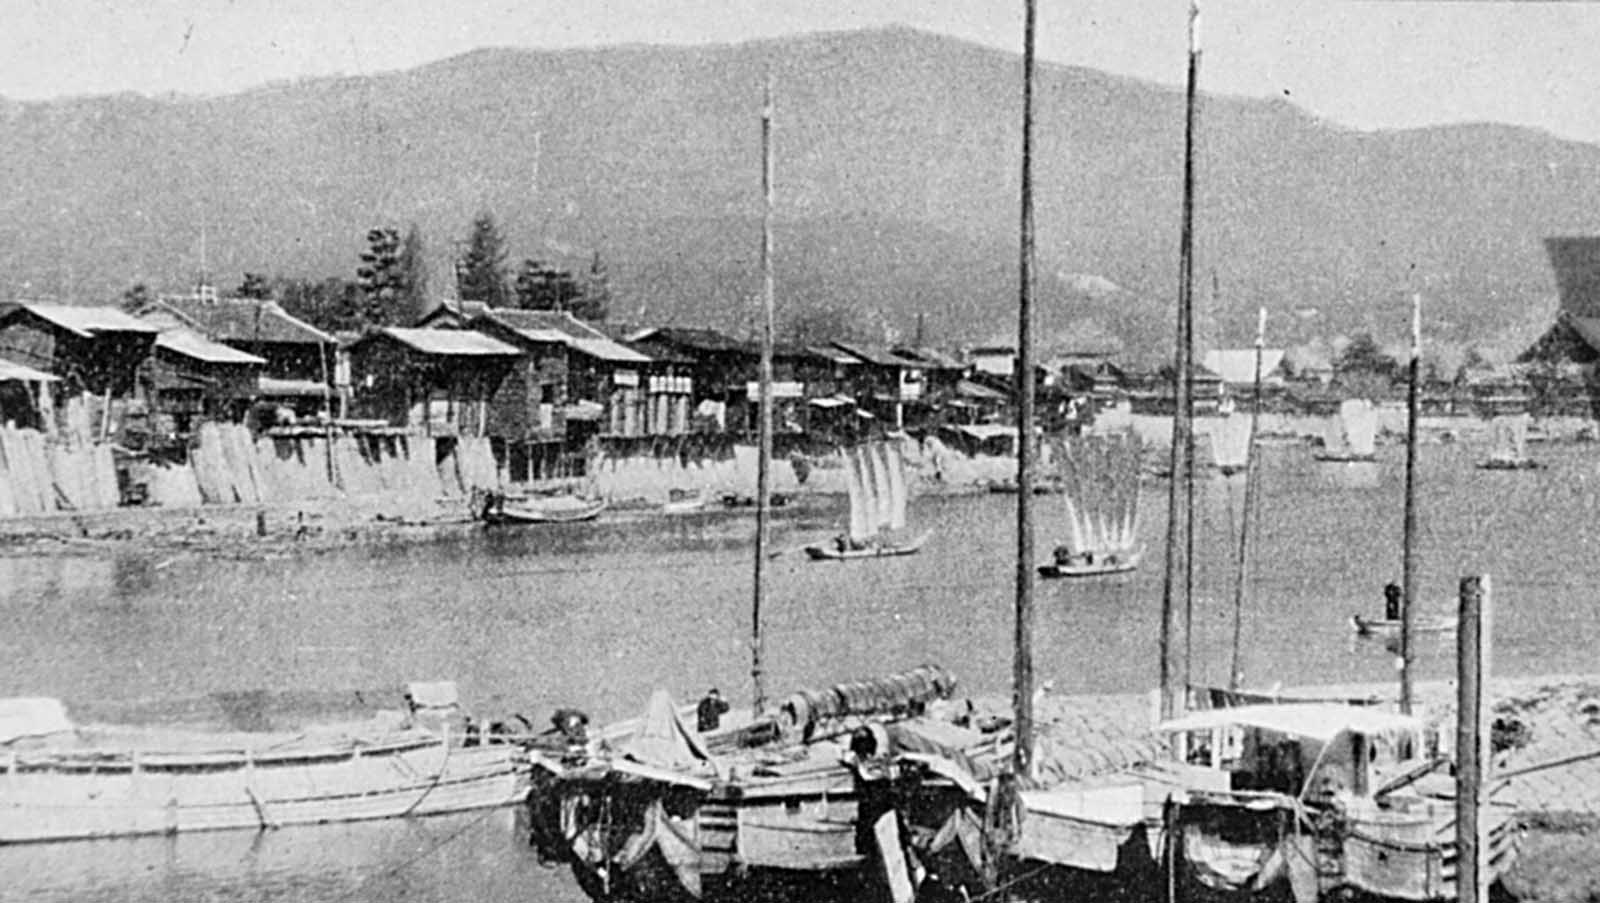 Looking north from the vicinity of the Aioi Bridge (the central T-shaped bridge targeted by the bomb). Wooden houses line the bank of the Otagawa, with traditional Japanese river boats in the foreground.